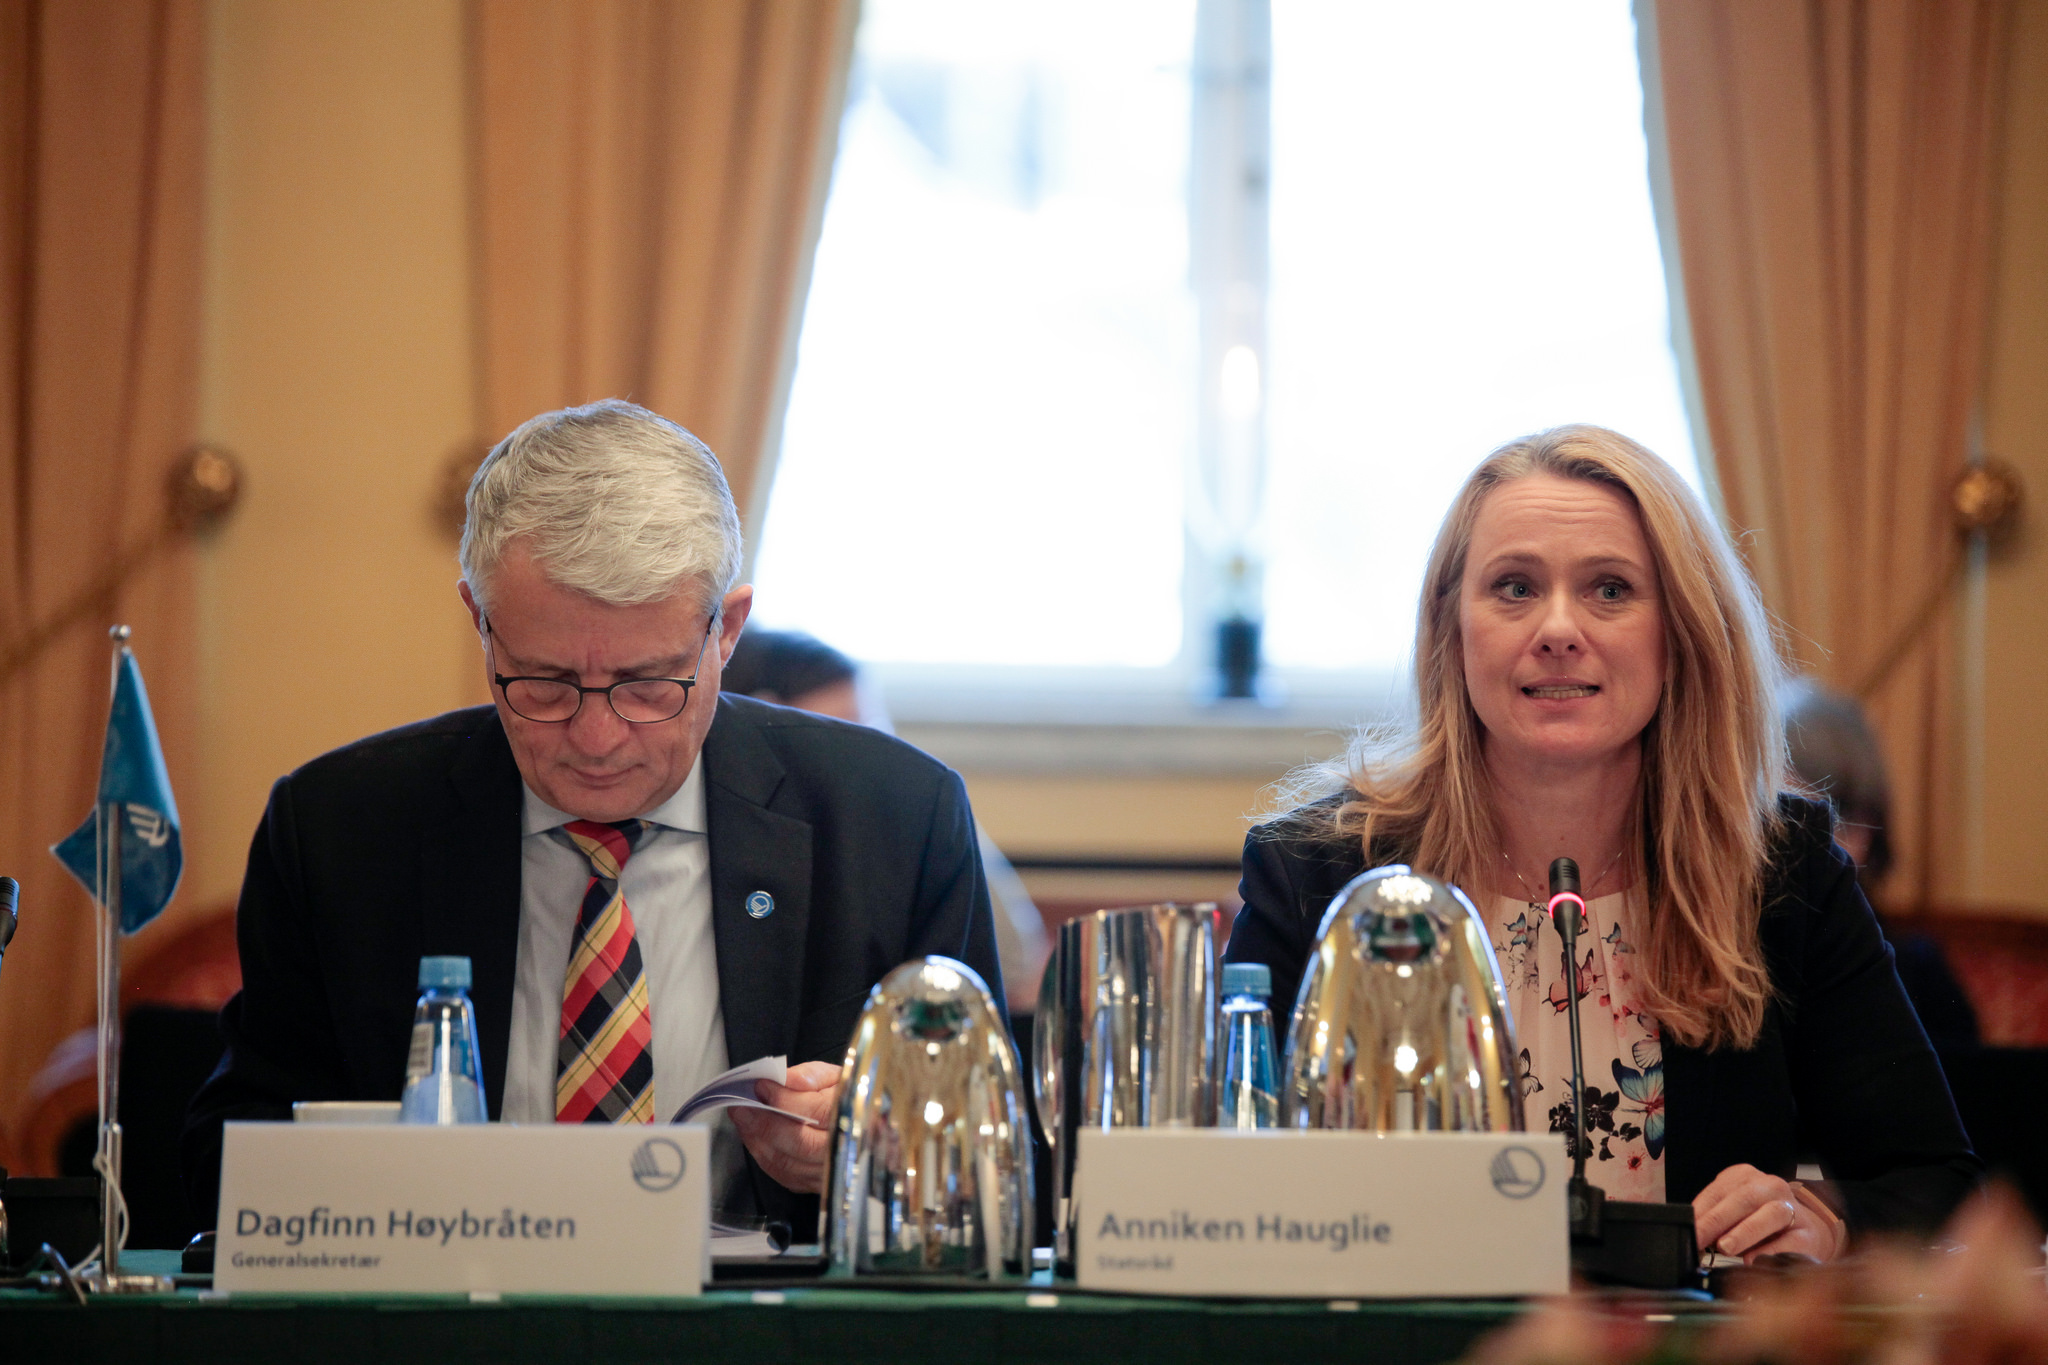 Anniken Hauglie at the Nordic council of ministers - changing focus on working environments